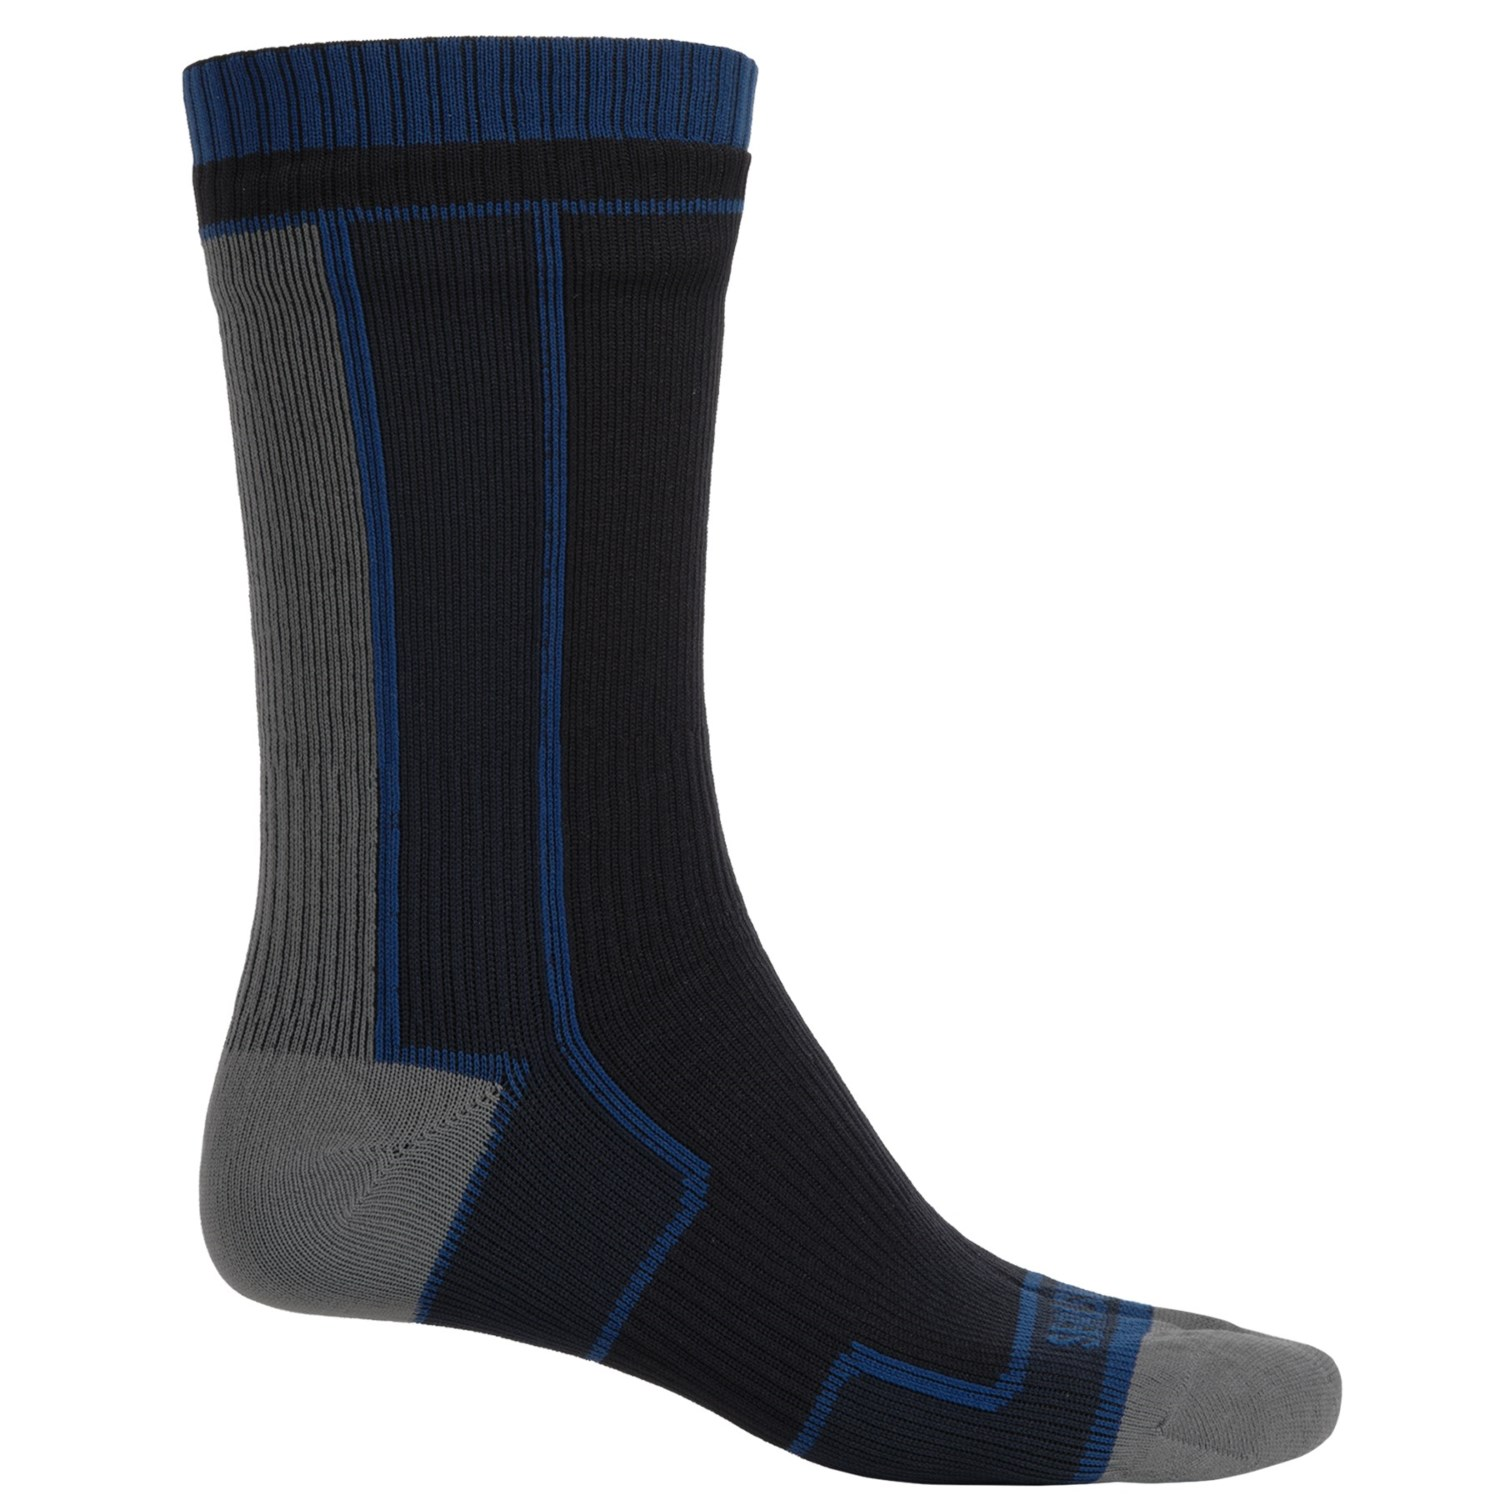 These men's dress socks are the thinnest we offer, meeting a certain level of lightness and breathability. No matches found. Check out our bold selection of 1,+ products.